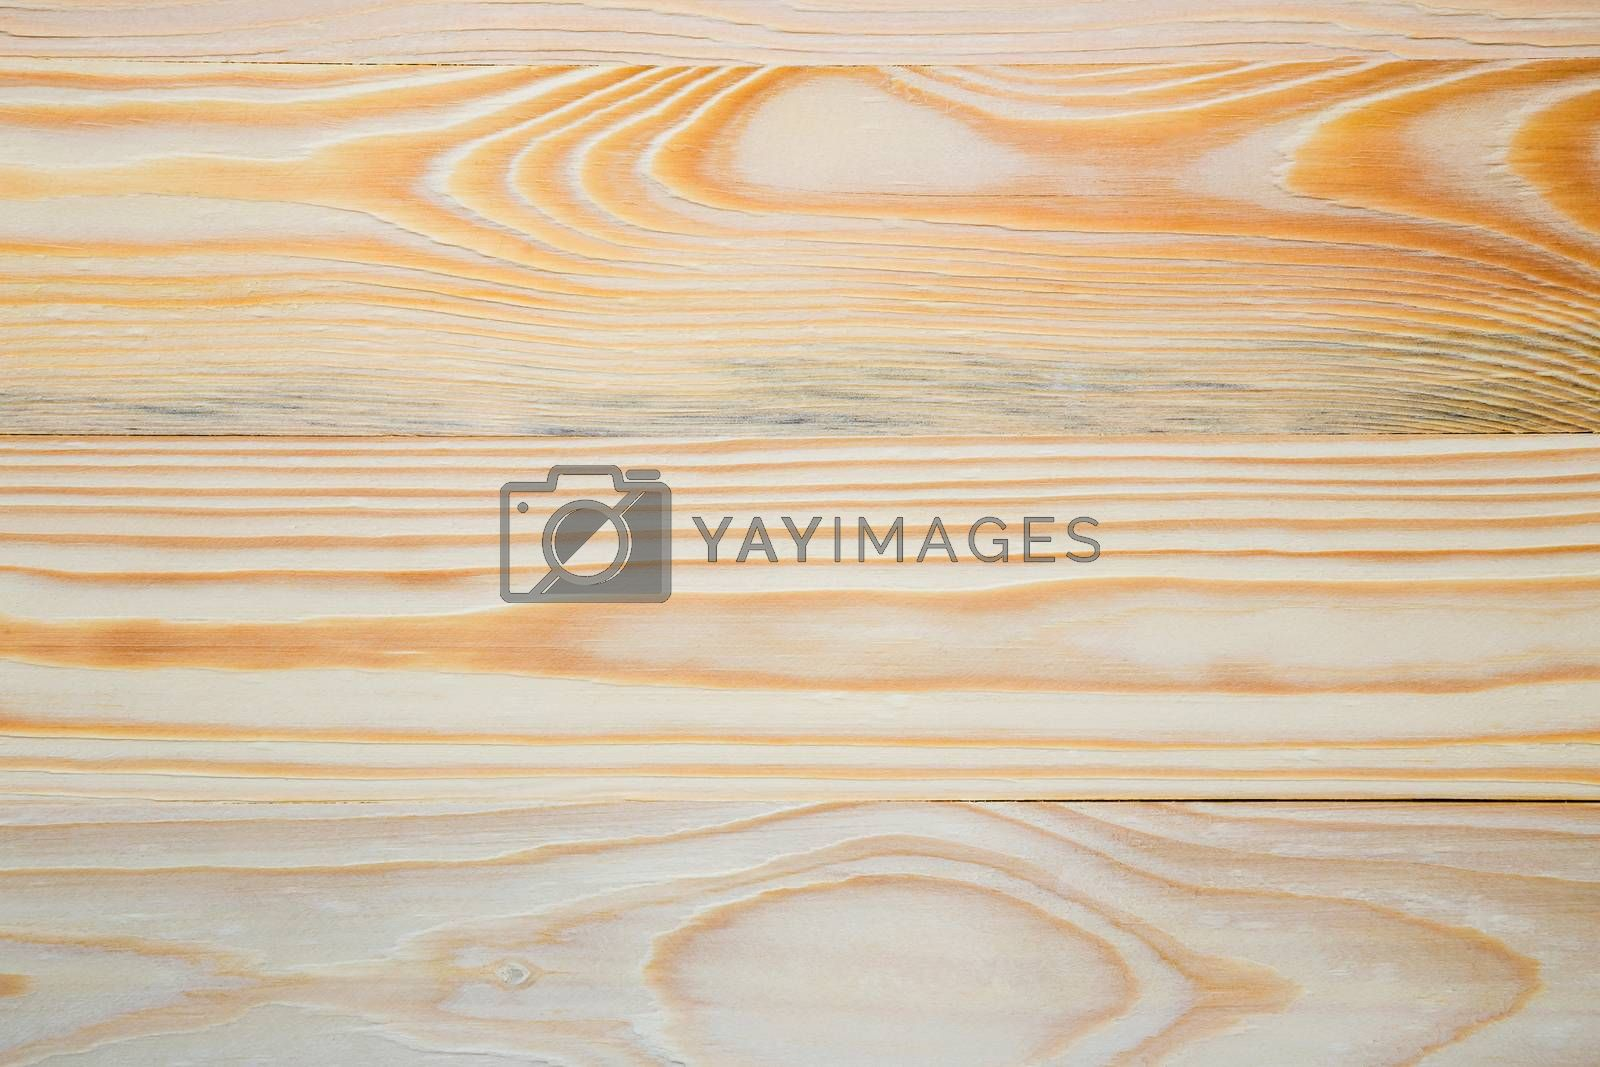 The surface of the wood used for the background.